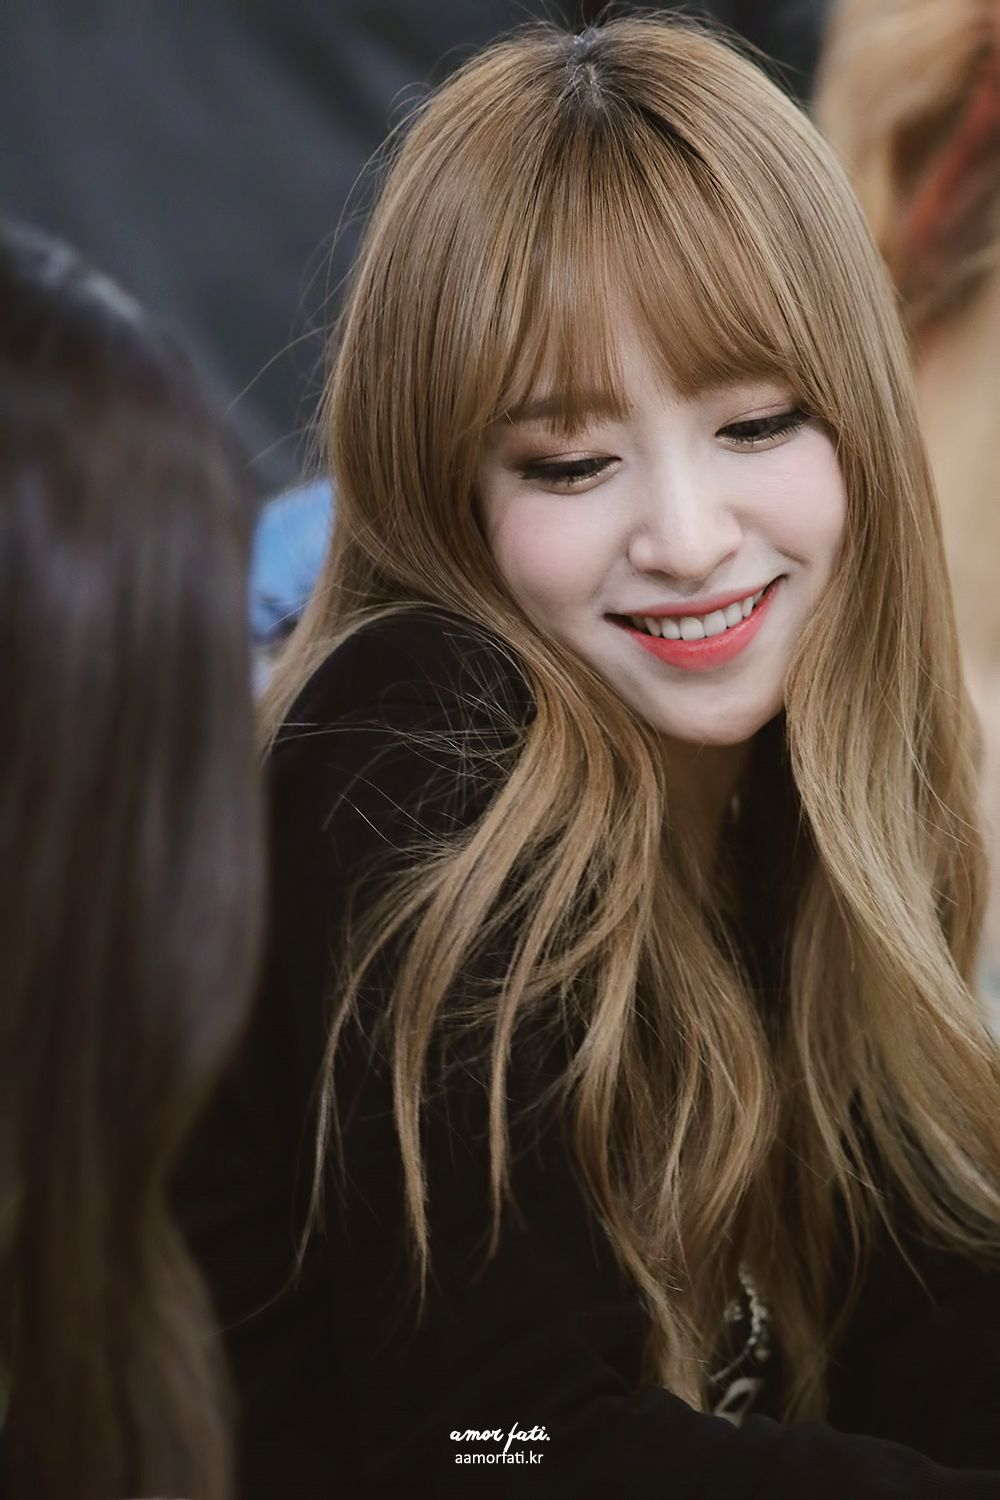 Exid hani i think she looks a little like wendy from red velvet in